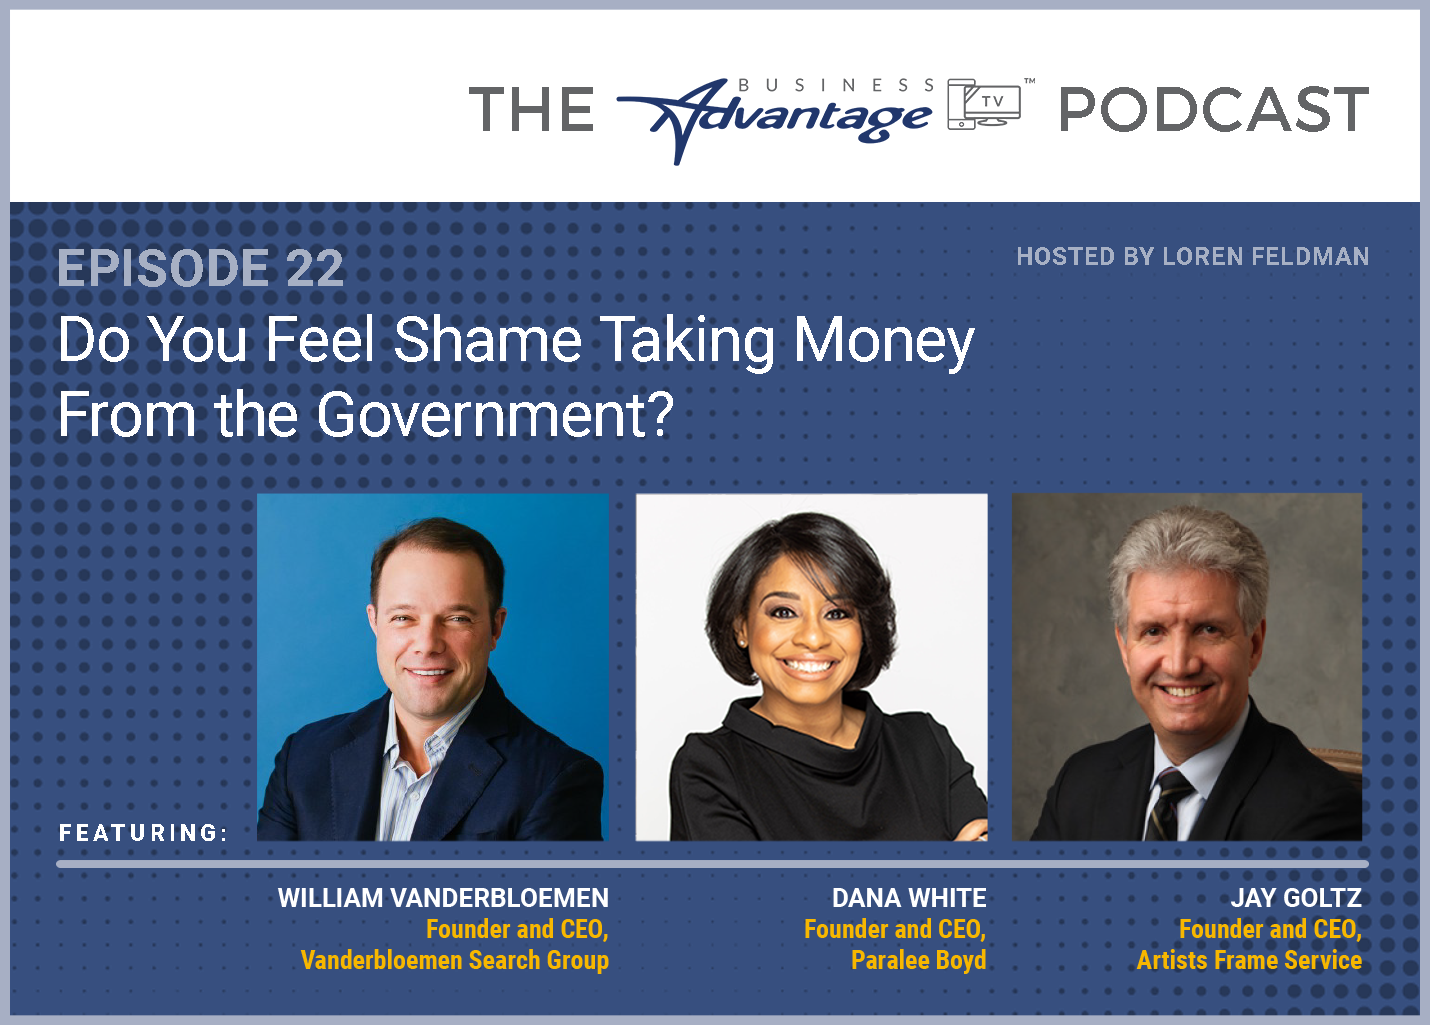 Episode 22: Do You Feel Shame Taking Money From the Government?